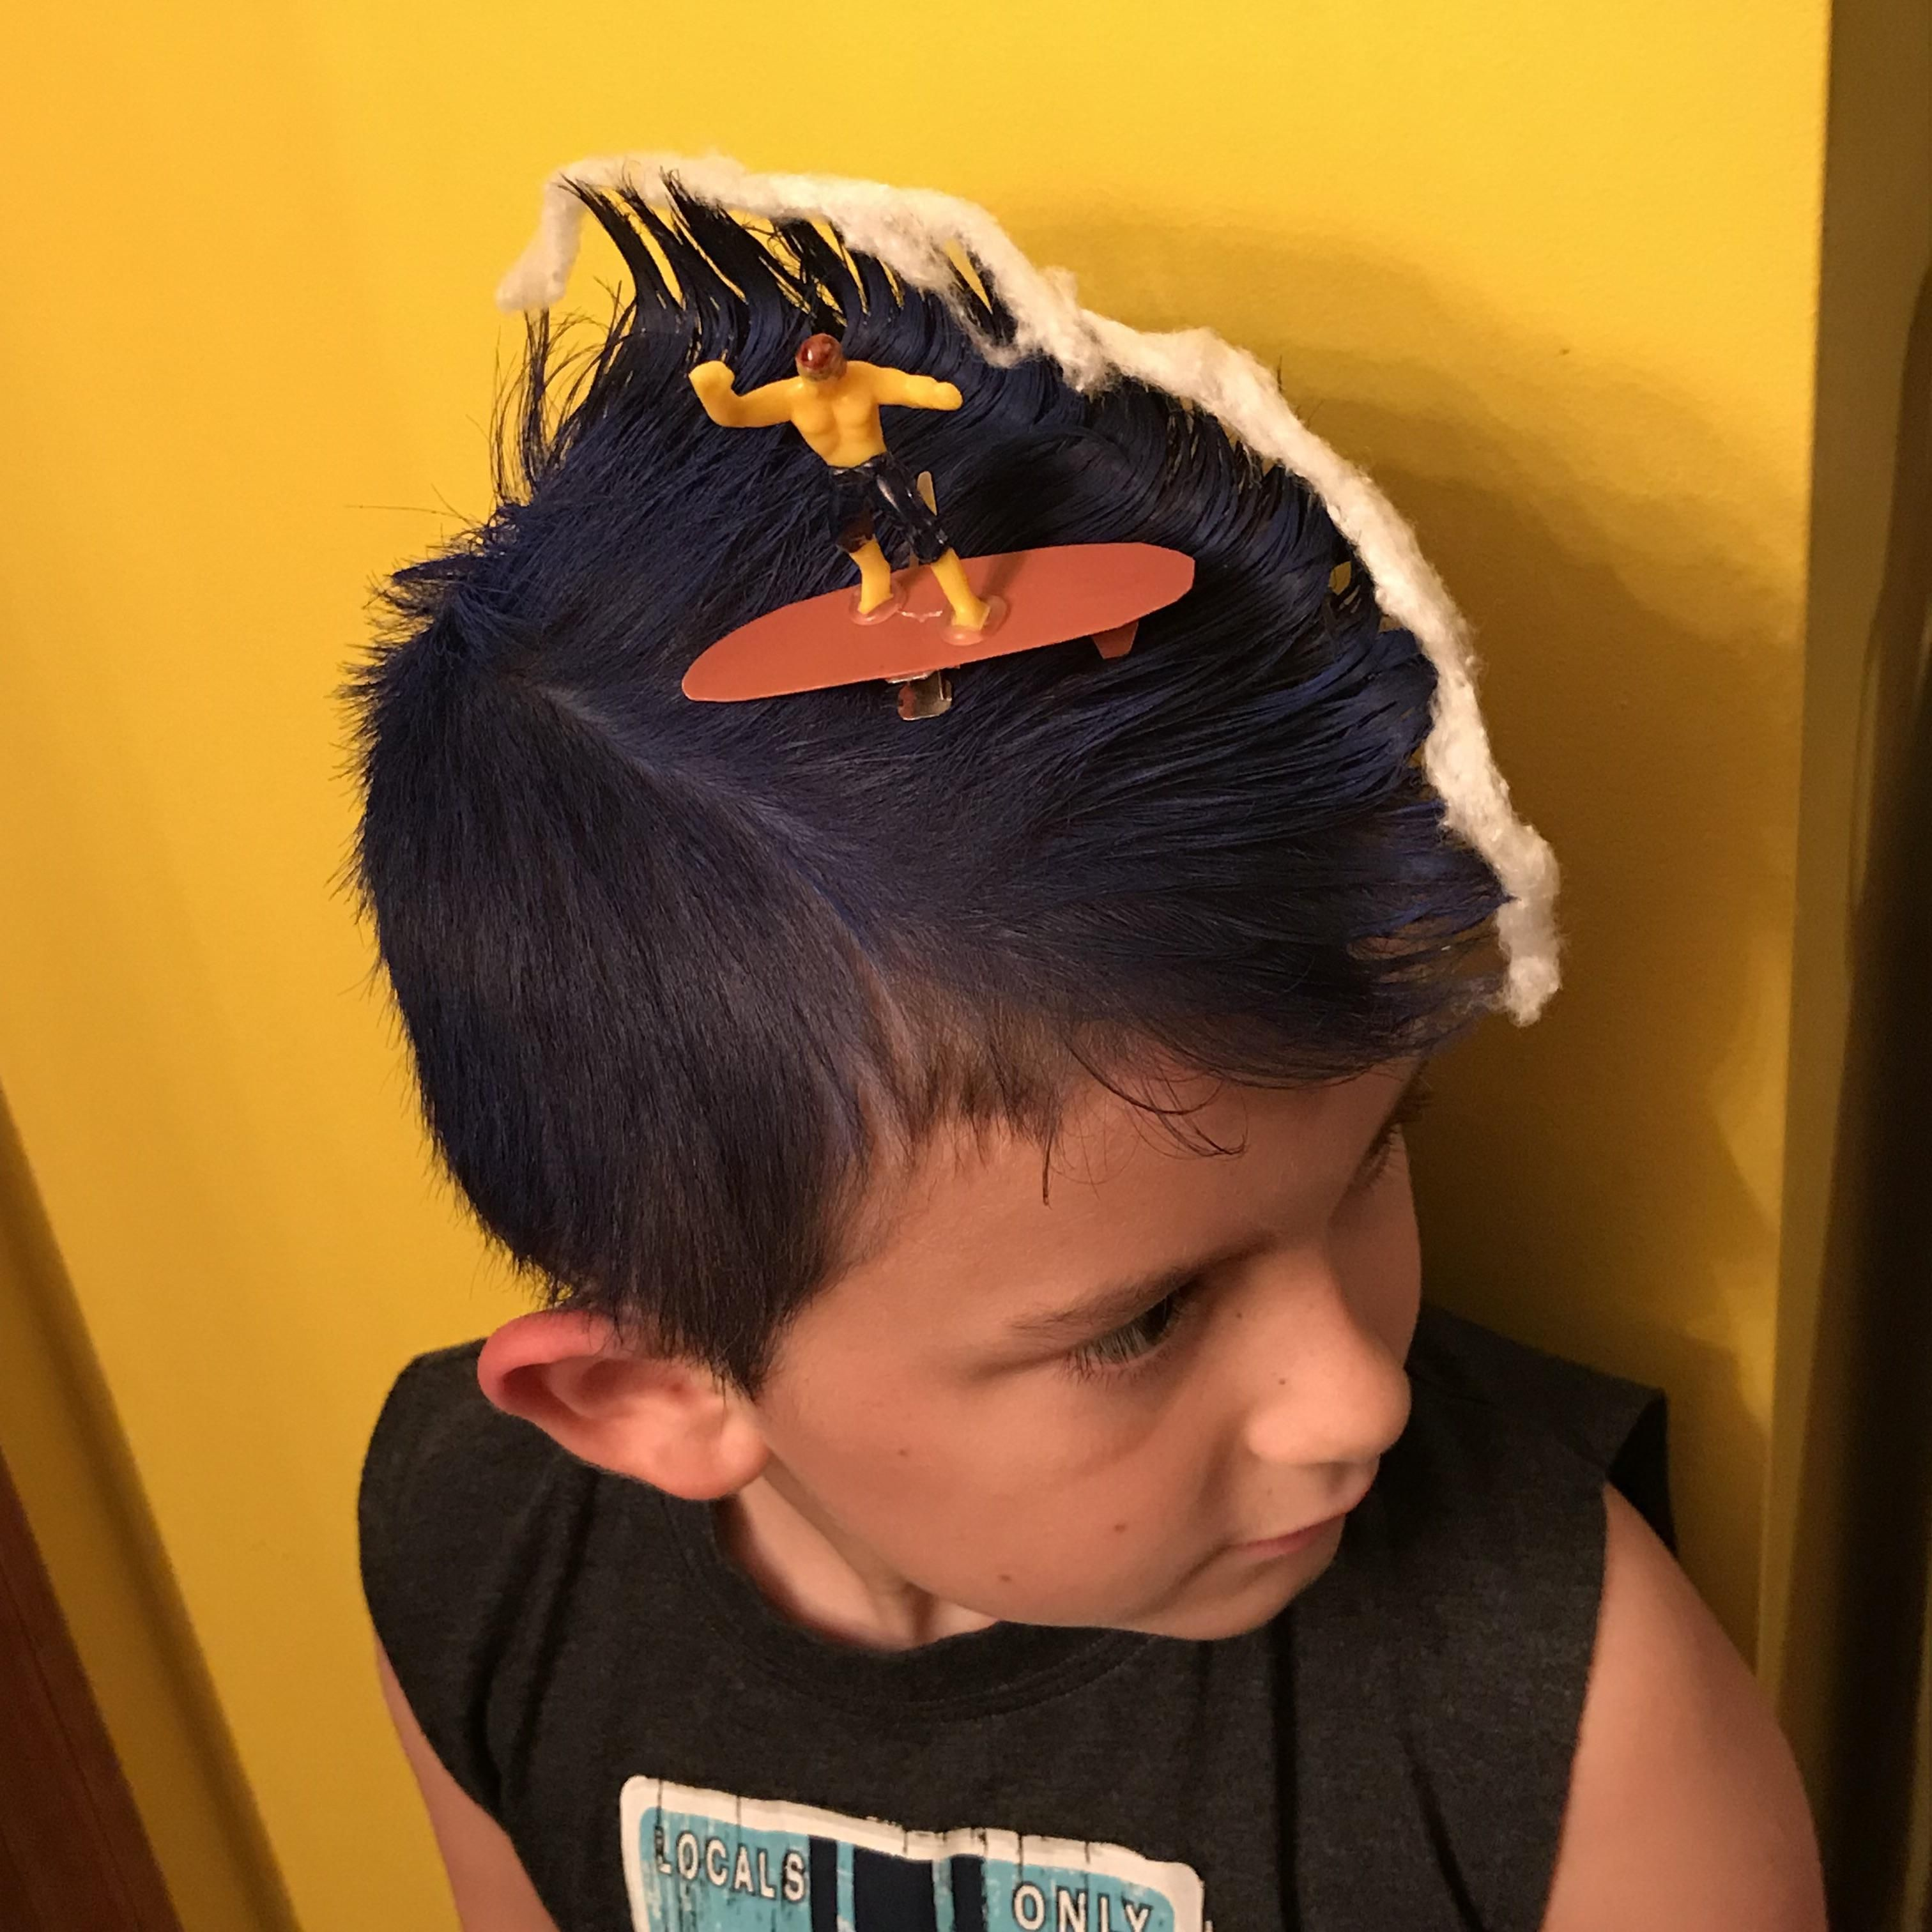 My son's hair for Crazy Hair day at school.